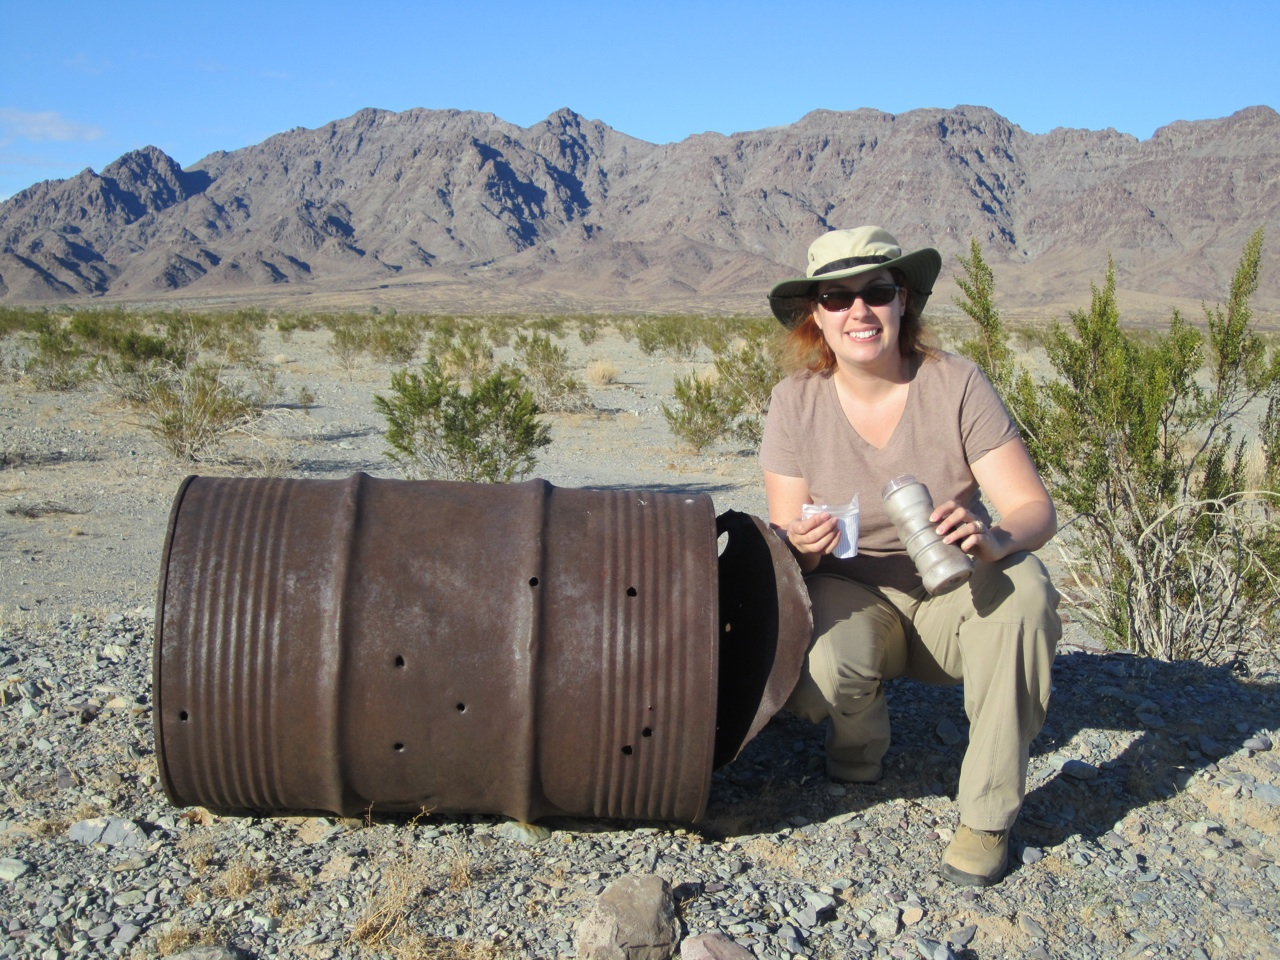 Brenda Finding A Cache In The Desert In An Old Rusty Drum